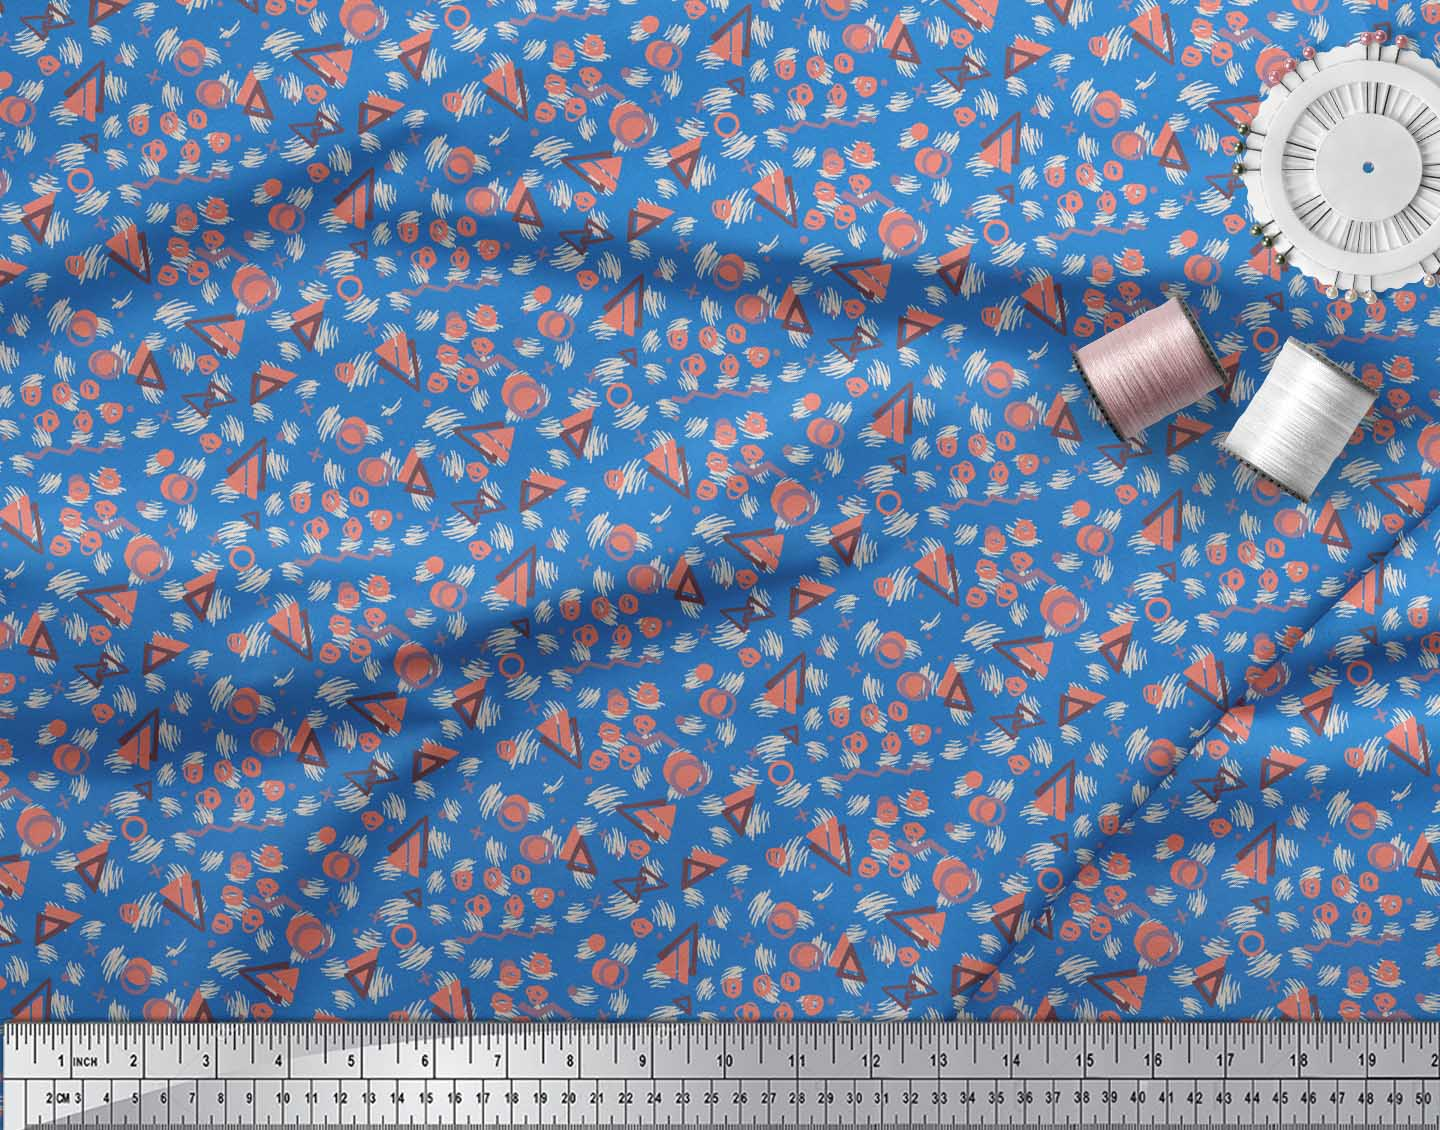 Soimoi-Blue-Cotton-Poplin-Fabric-Circle-amp-Triangle-Geometric-Print-Zqw thumbnail 4